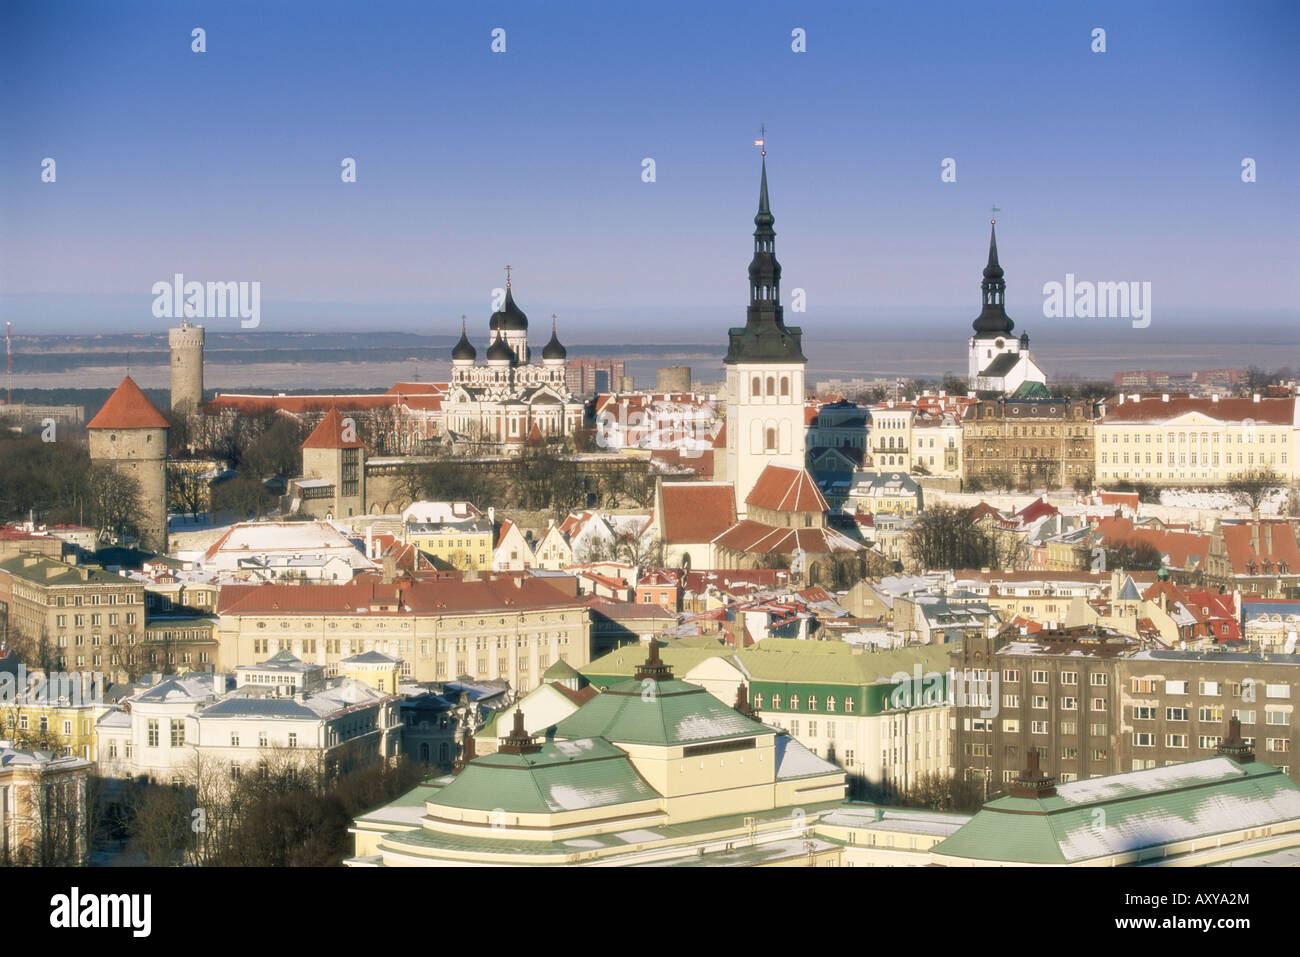 Elevated winter view over the Old Town towards Alexander Nevsky cathedral, Tallinn, Estonia, Baltic States - Stock Image